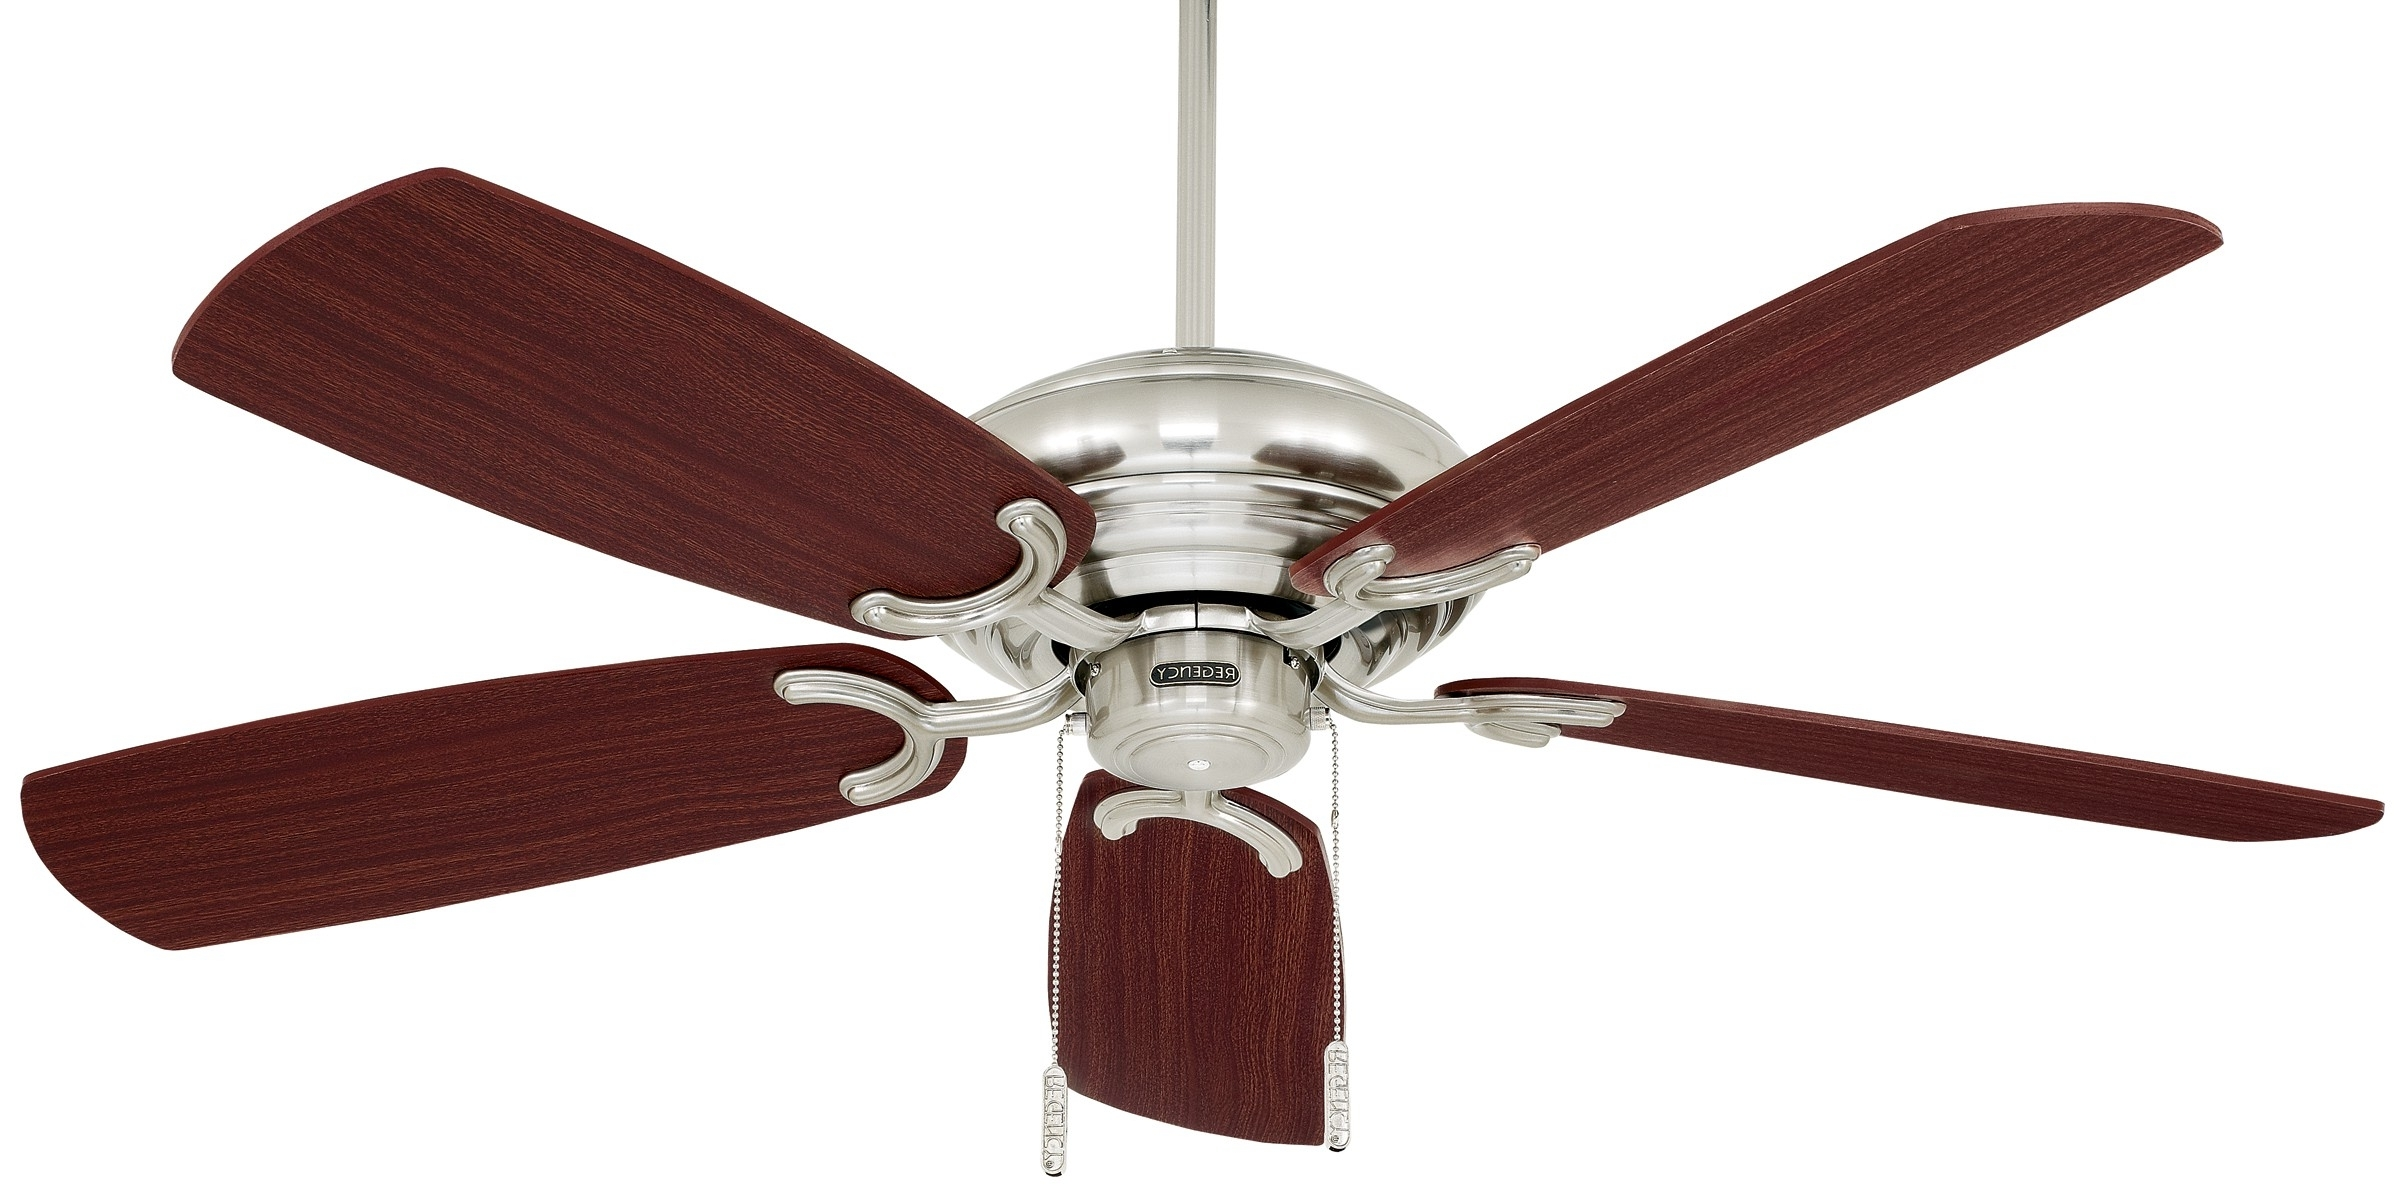 Outdoor Ceiling Fans With Uplights With Regard To Preferred Crammed Ceiling Fan With Uplight Envoy En2 Mood Glow Unipack (View 18 of 20)